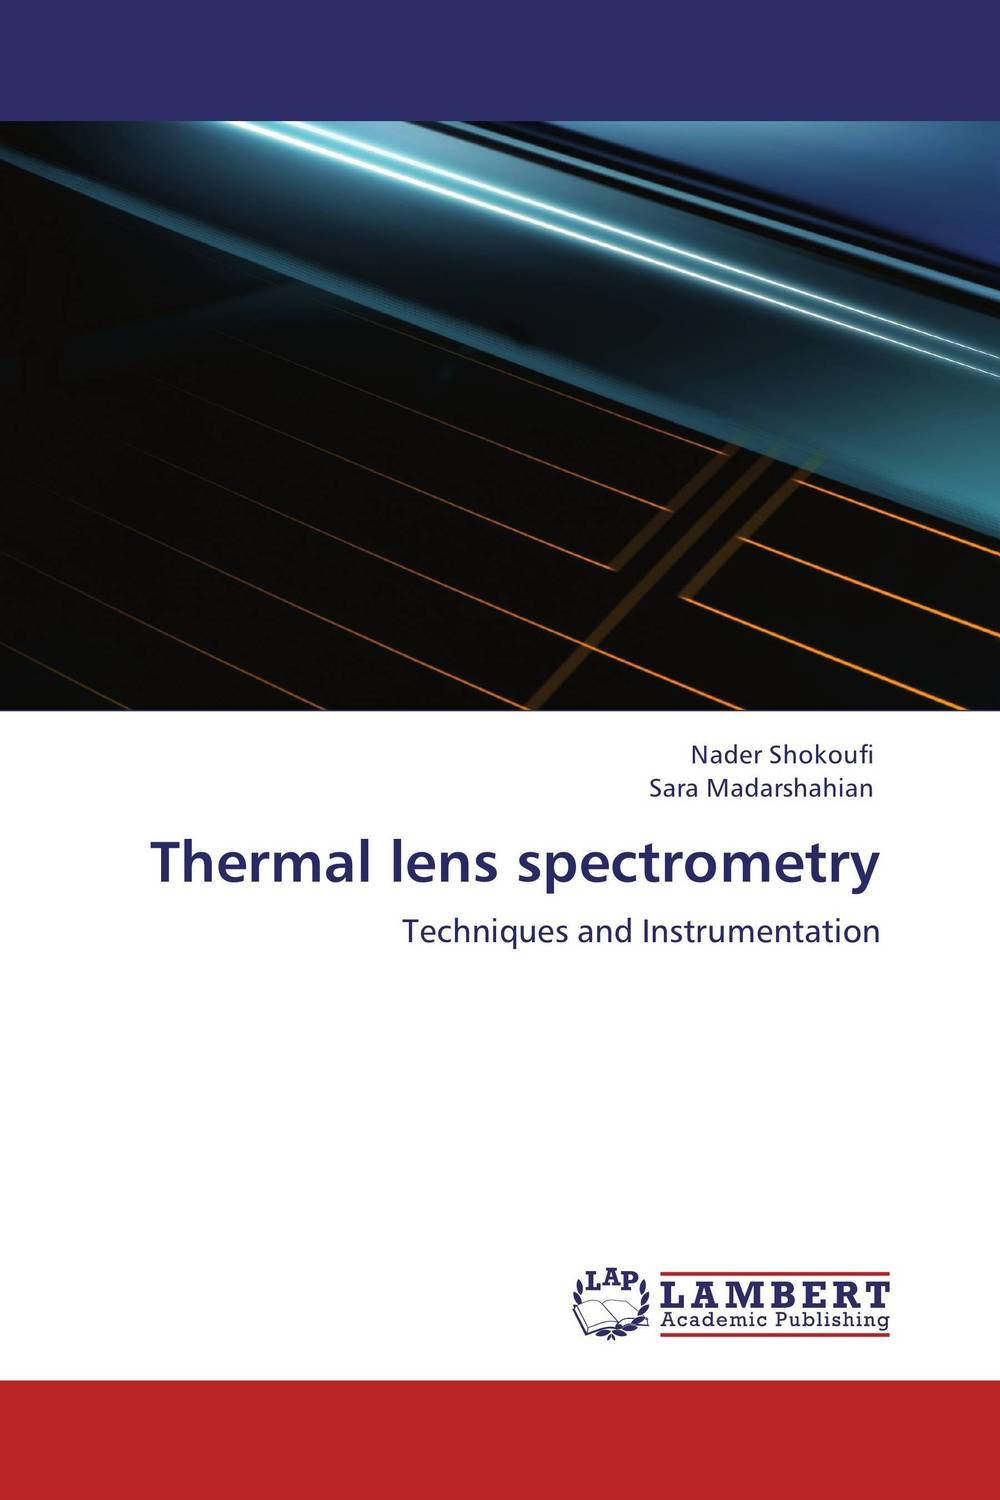 Thermal lens spectrometry consequences detection and forecasting with autocorrelated errors